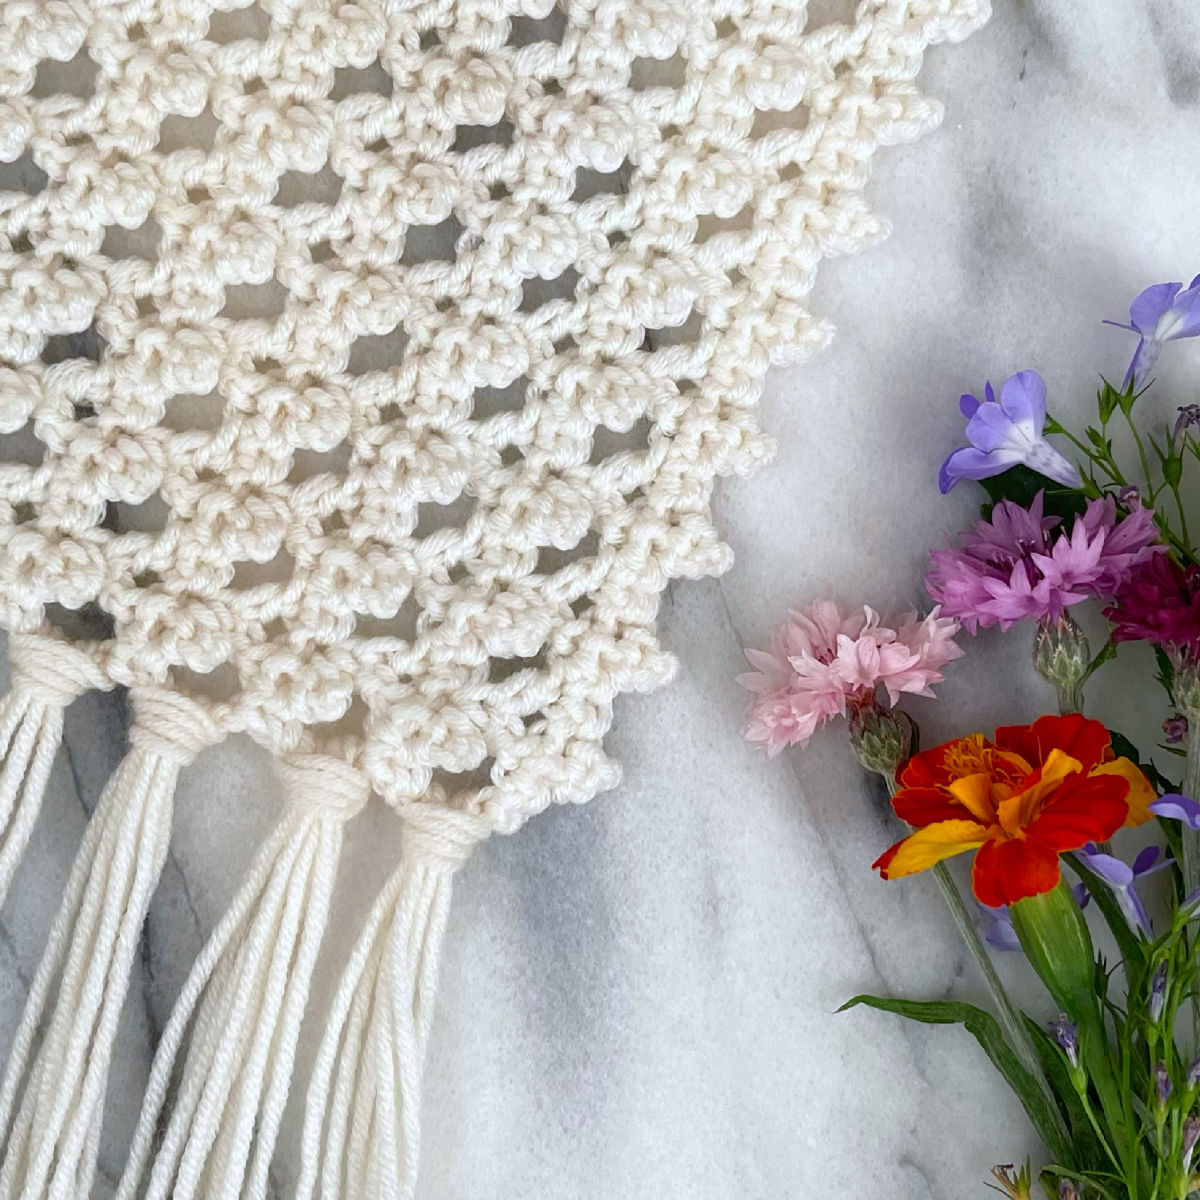 Close-up shot of flowers laying next to the shawl